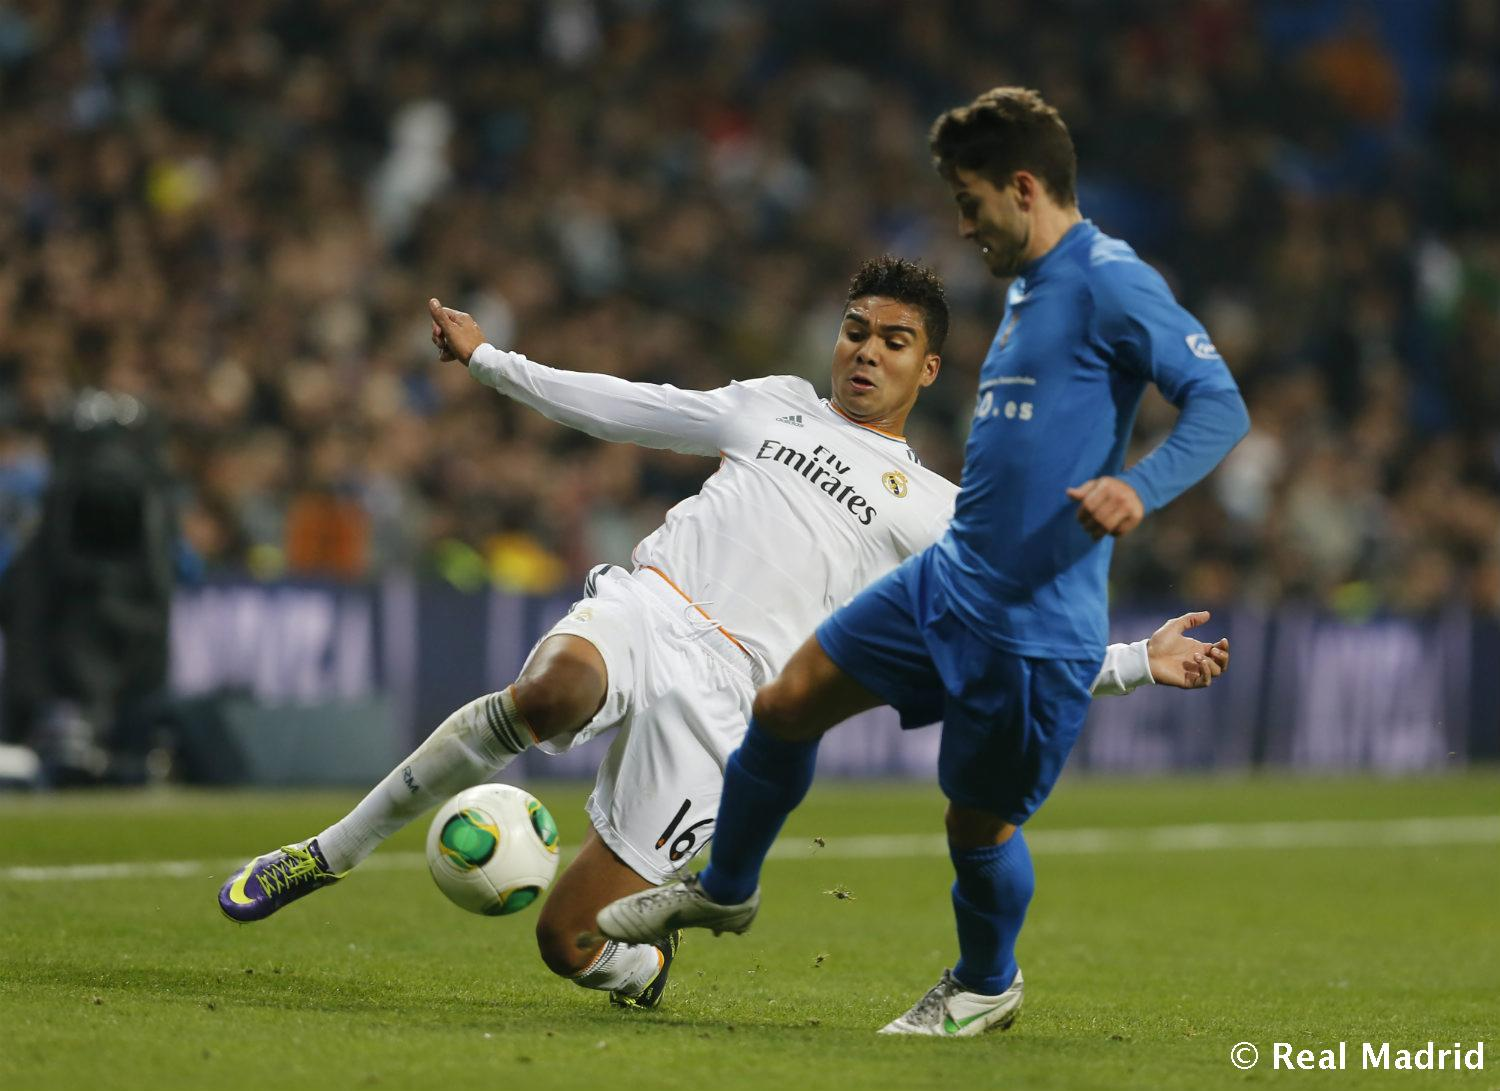 Real Madrid - Casemiro - 27-01-2014